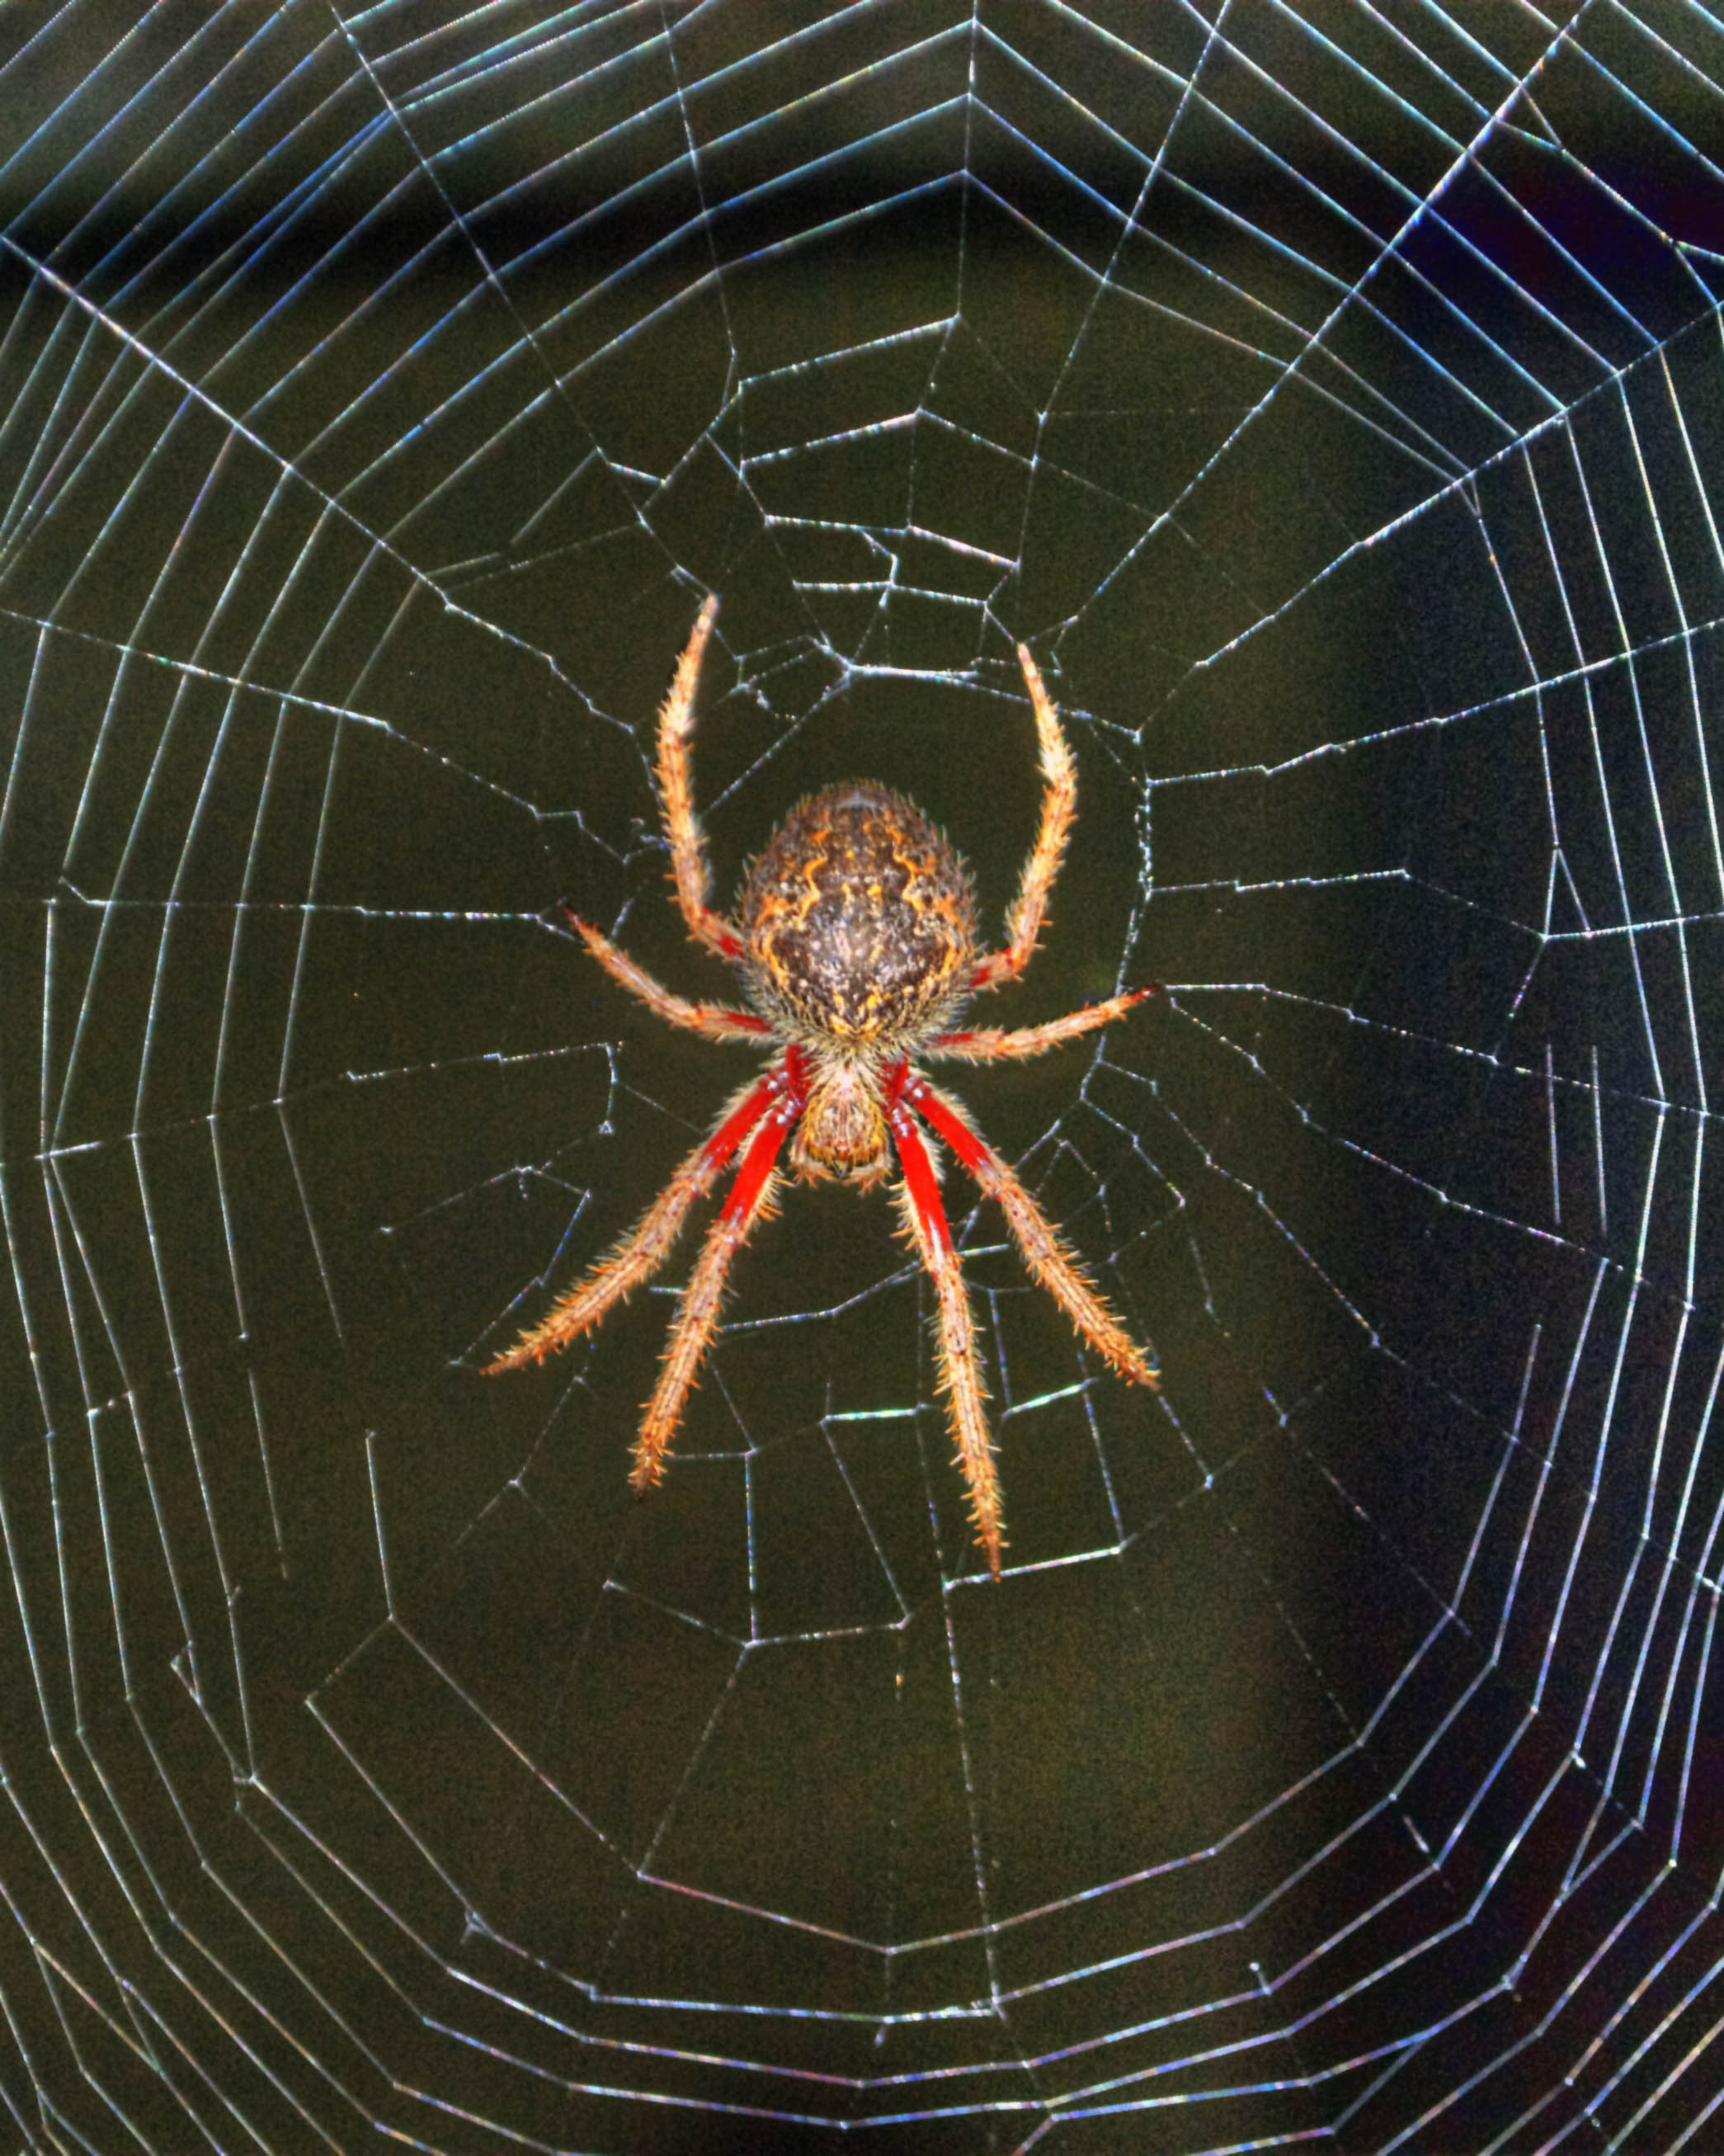 Missing Sector Orb Web Spider